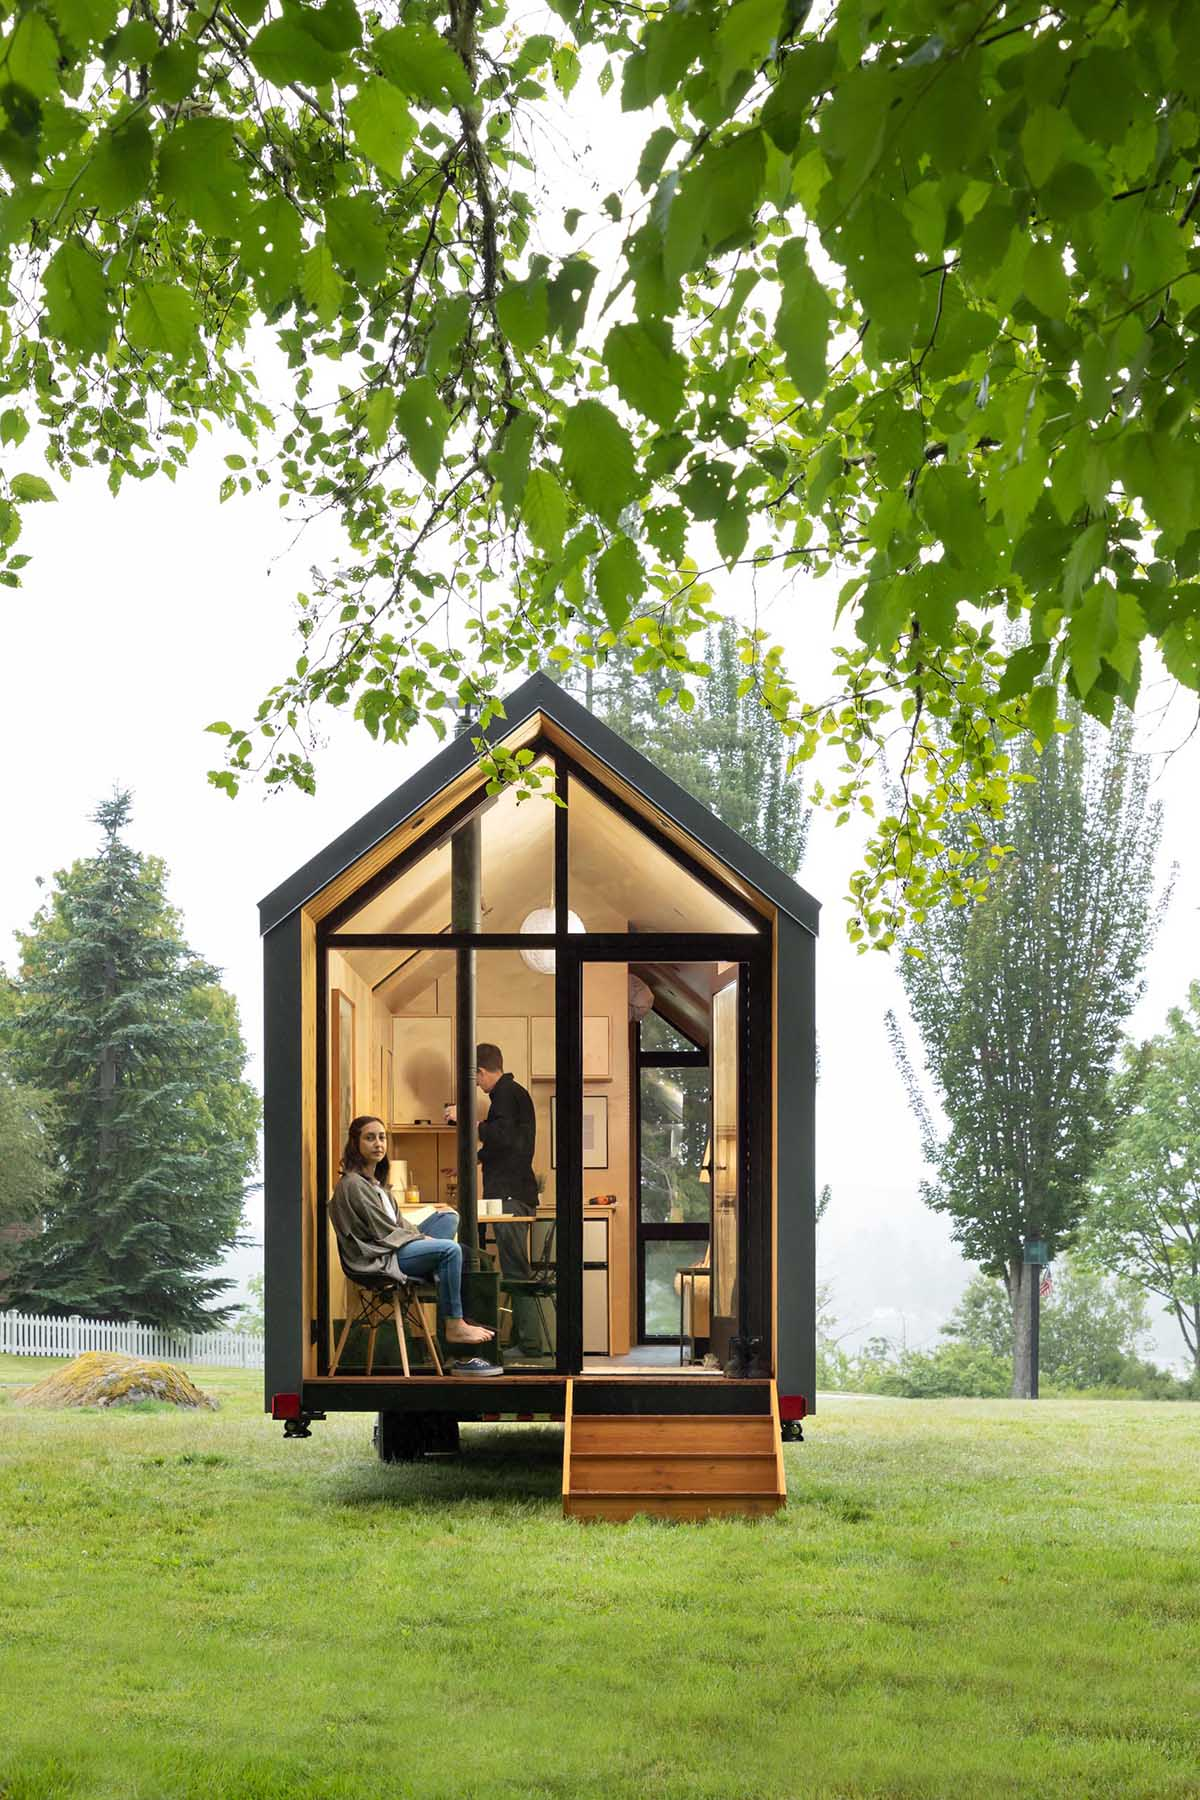 A wall of windows with a door at one end of this modern tiny home allows for natural light to filter through, and creates a connection to the small porch and the outdoors.